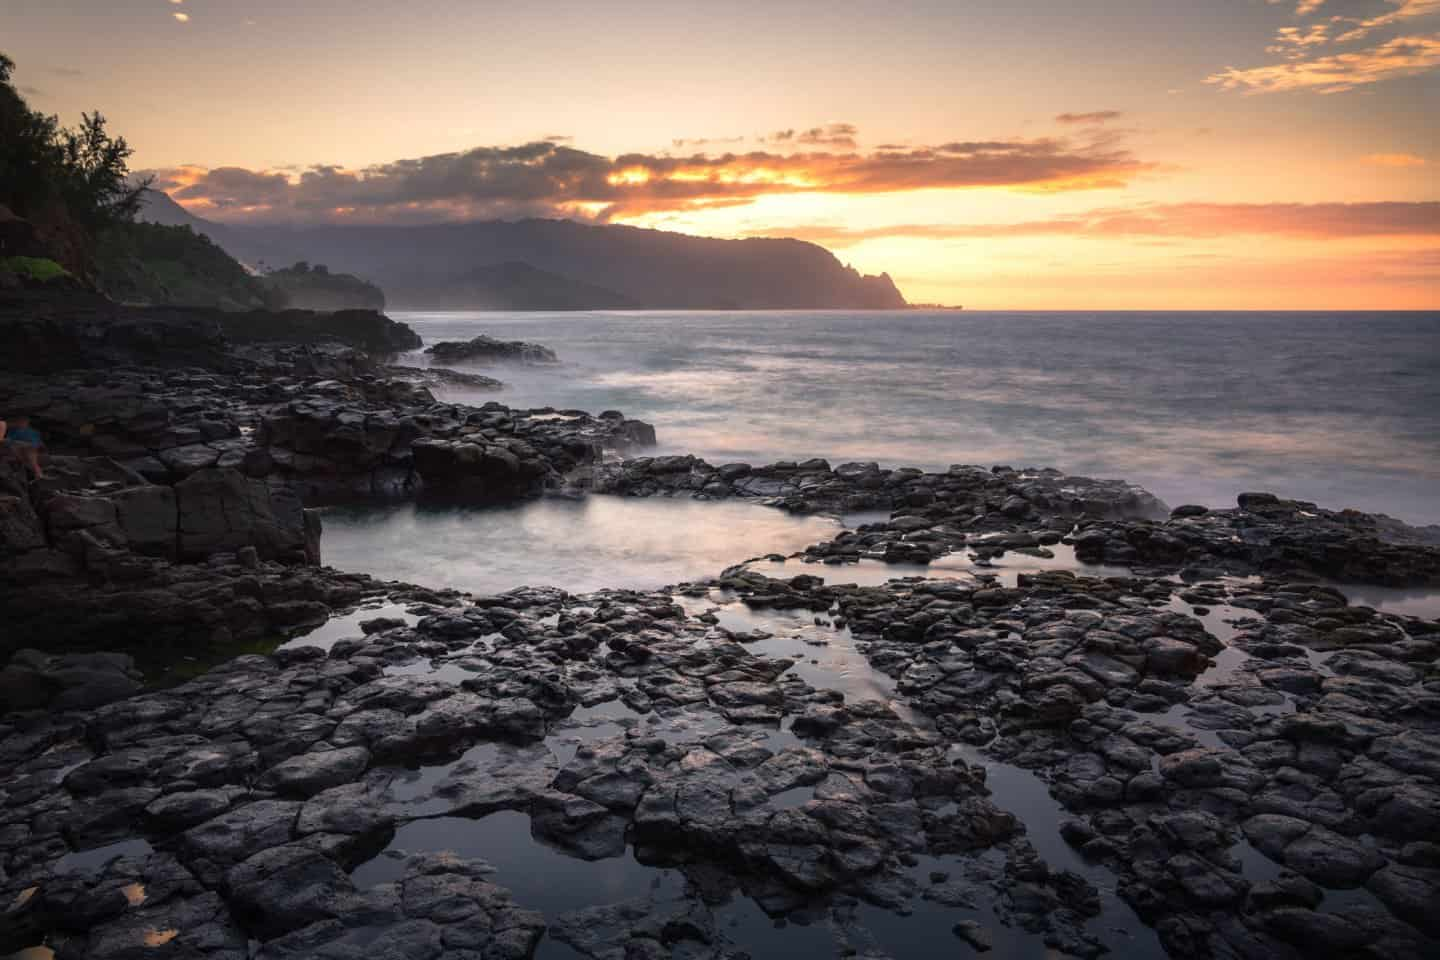 Sunset photography from the tidal pools at Queen's Bath on the North Shore of Kauai.